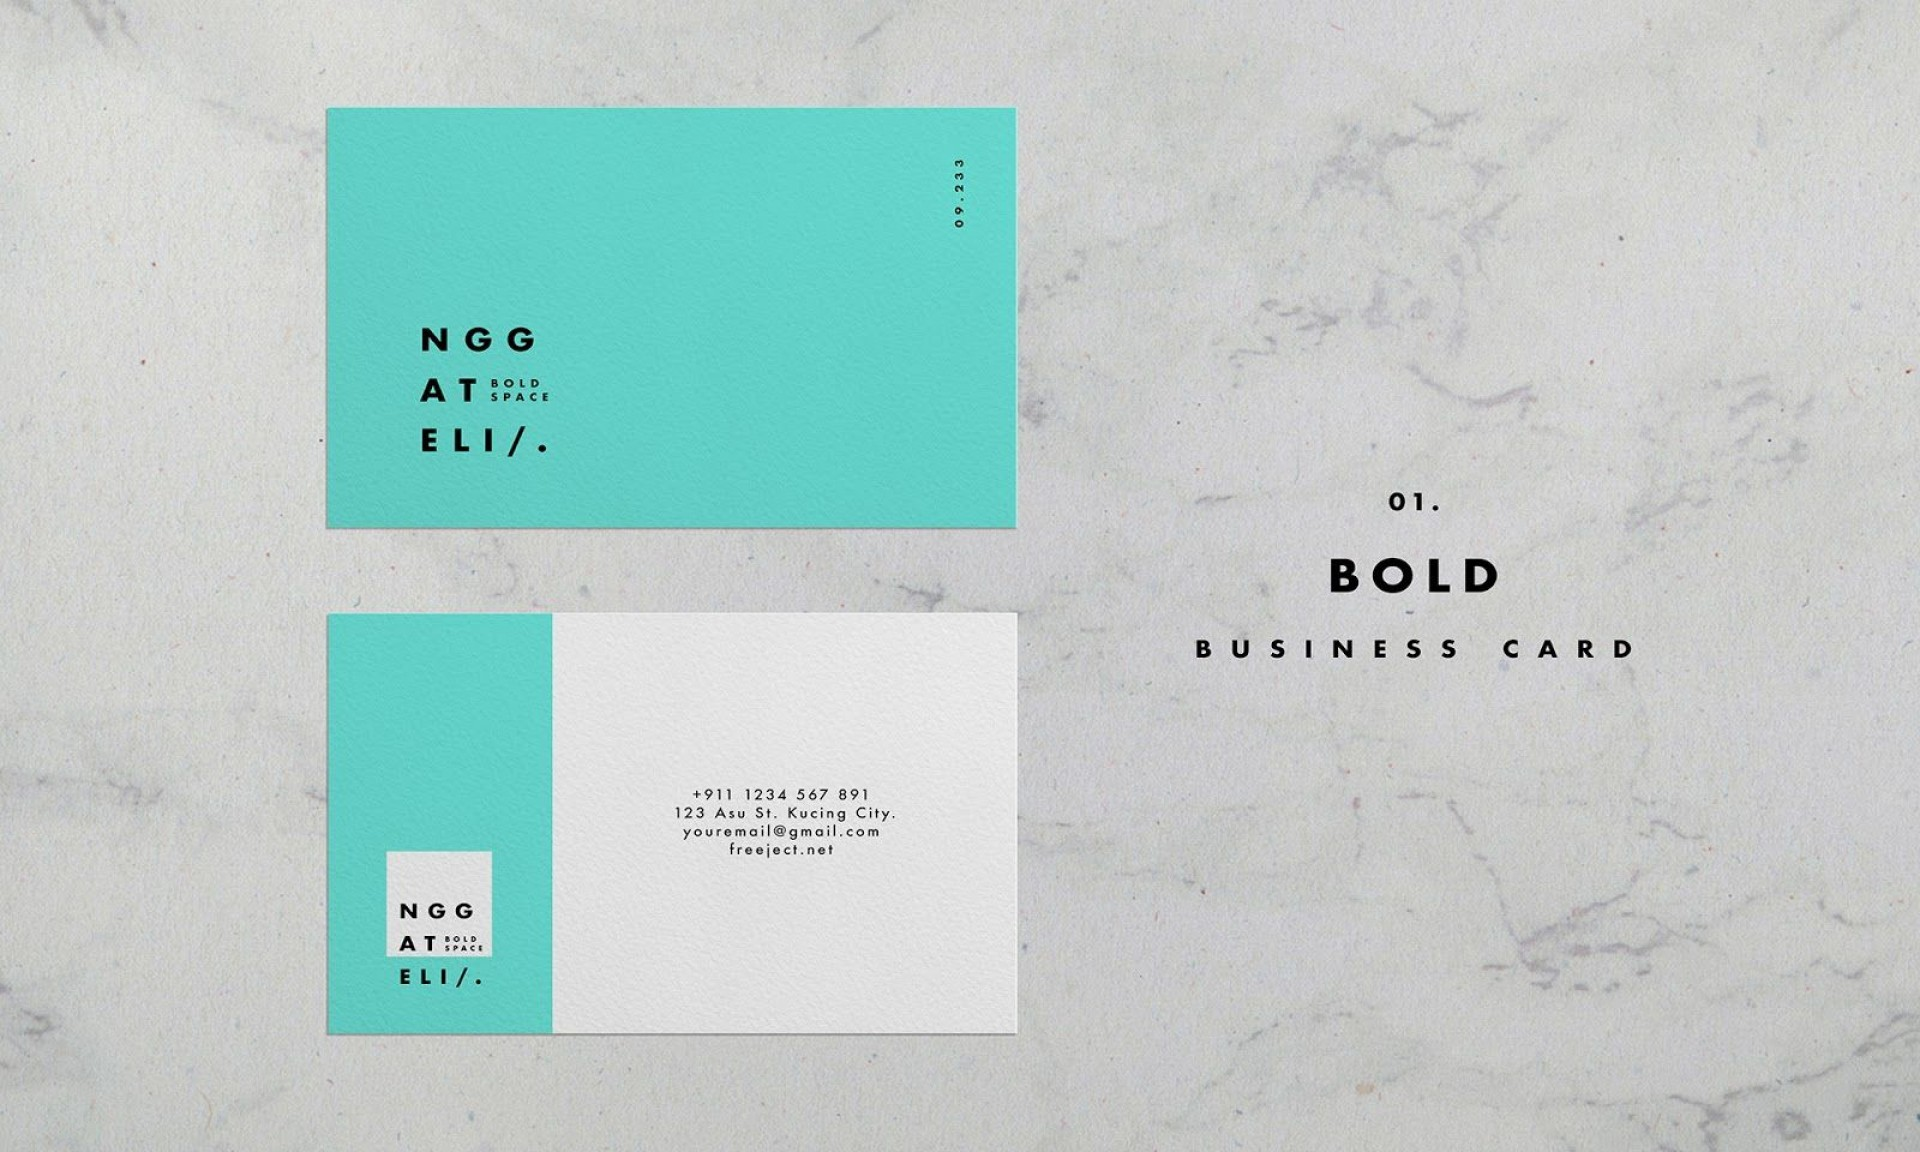 008 Incredible Simple Busines Card Template Photoshop Design 1920